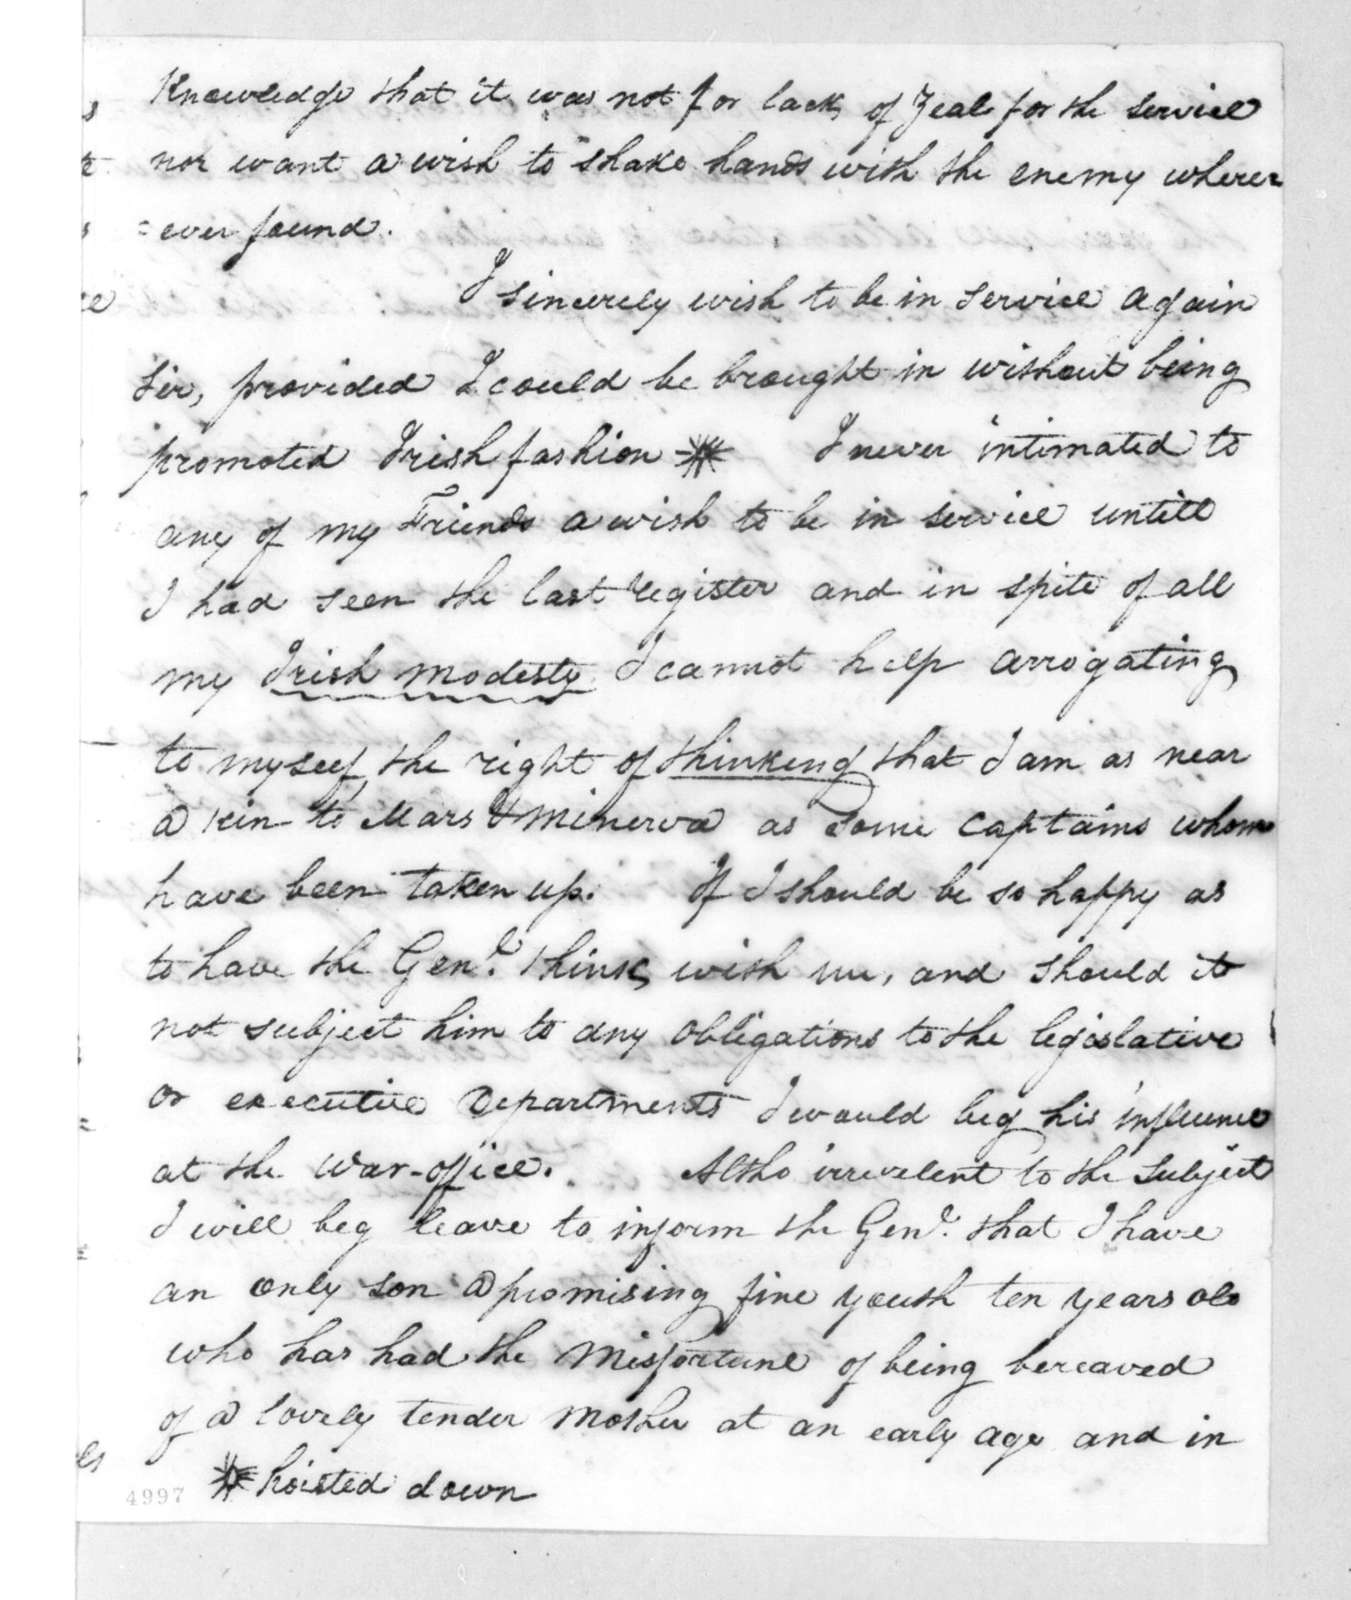 Walter Bourke to Andrew Jackson, March 11, 1816